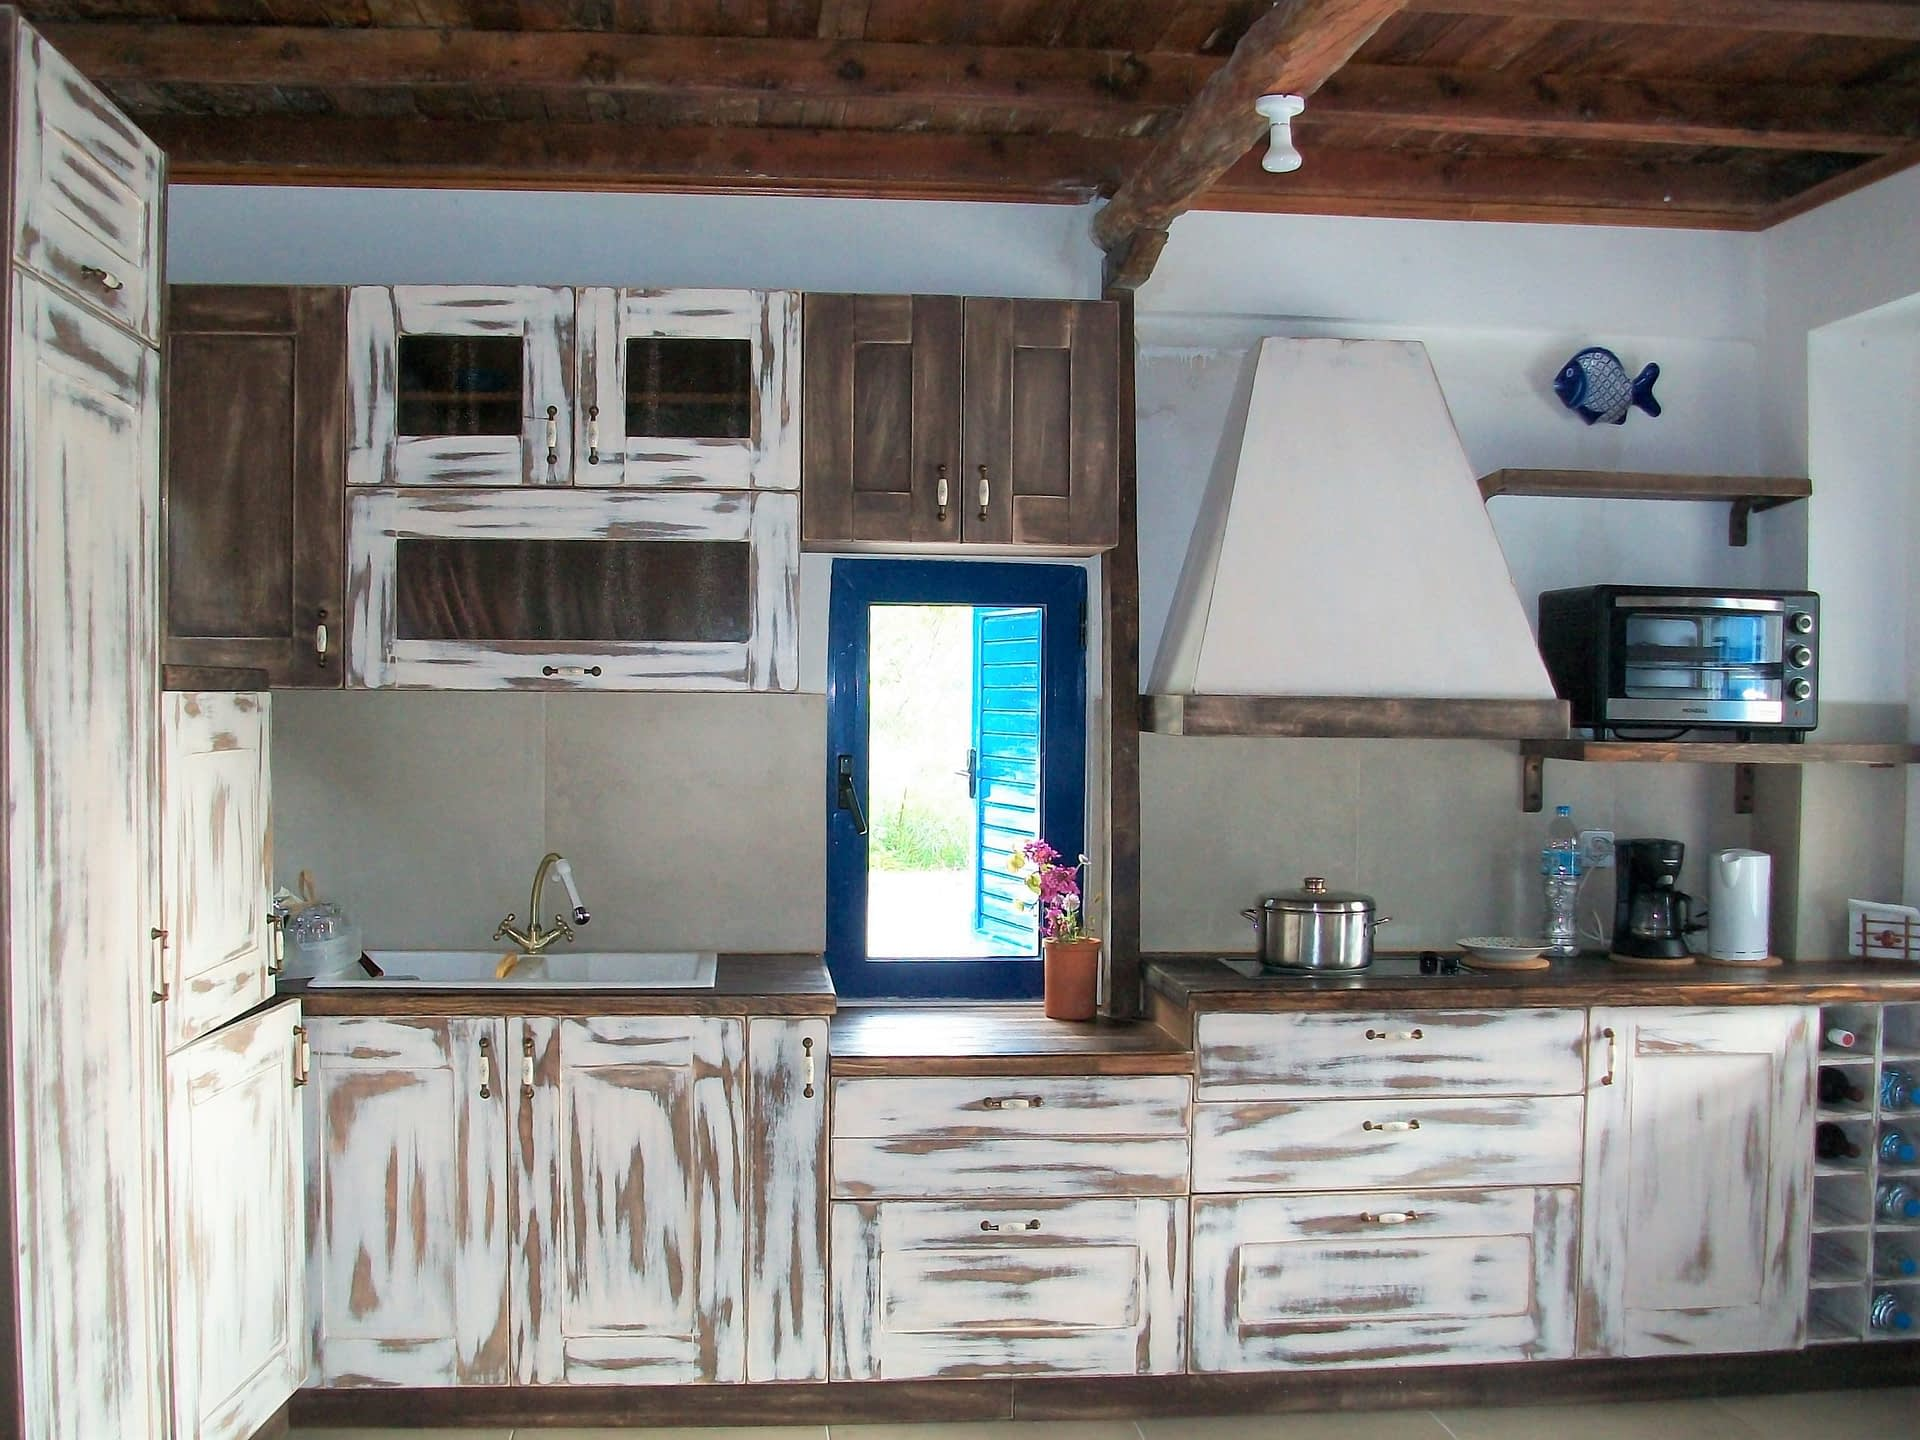 Interior Kitchen area of house for rent in Polis Bay Ithaca Greece